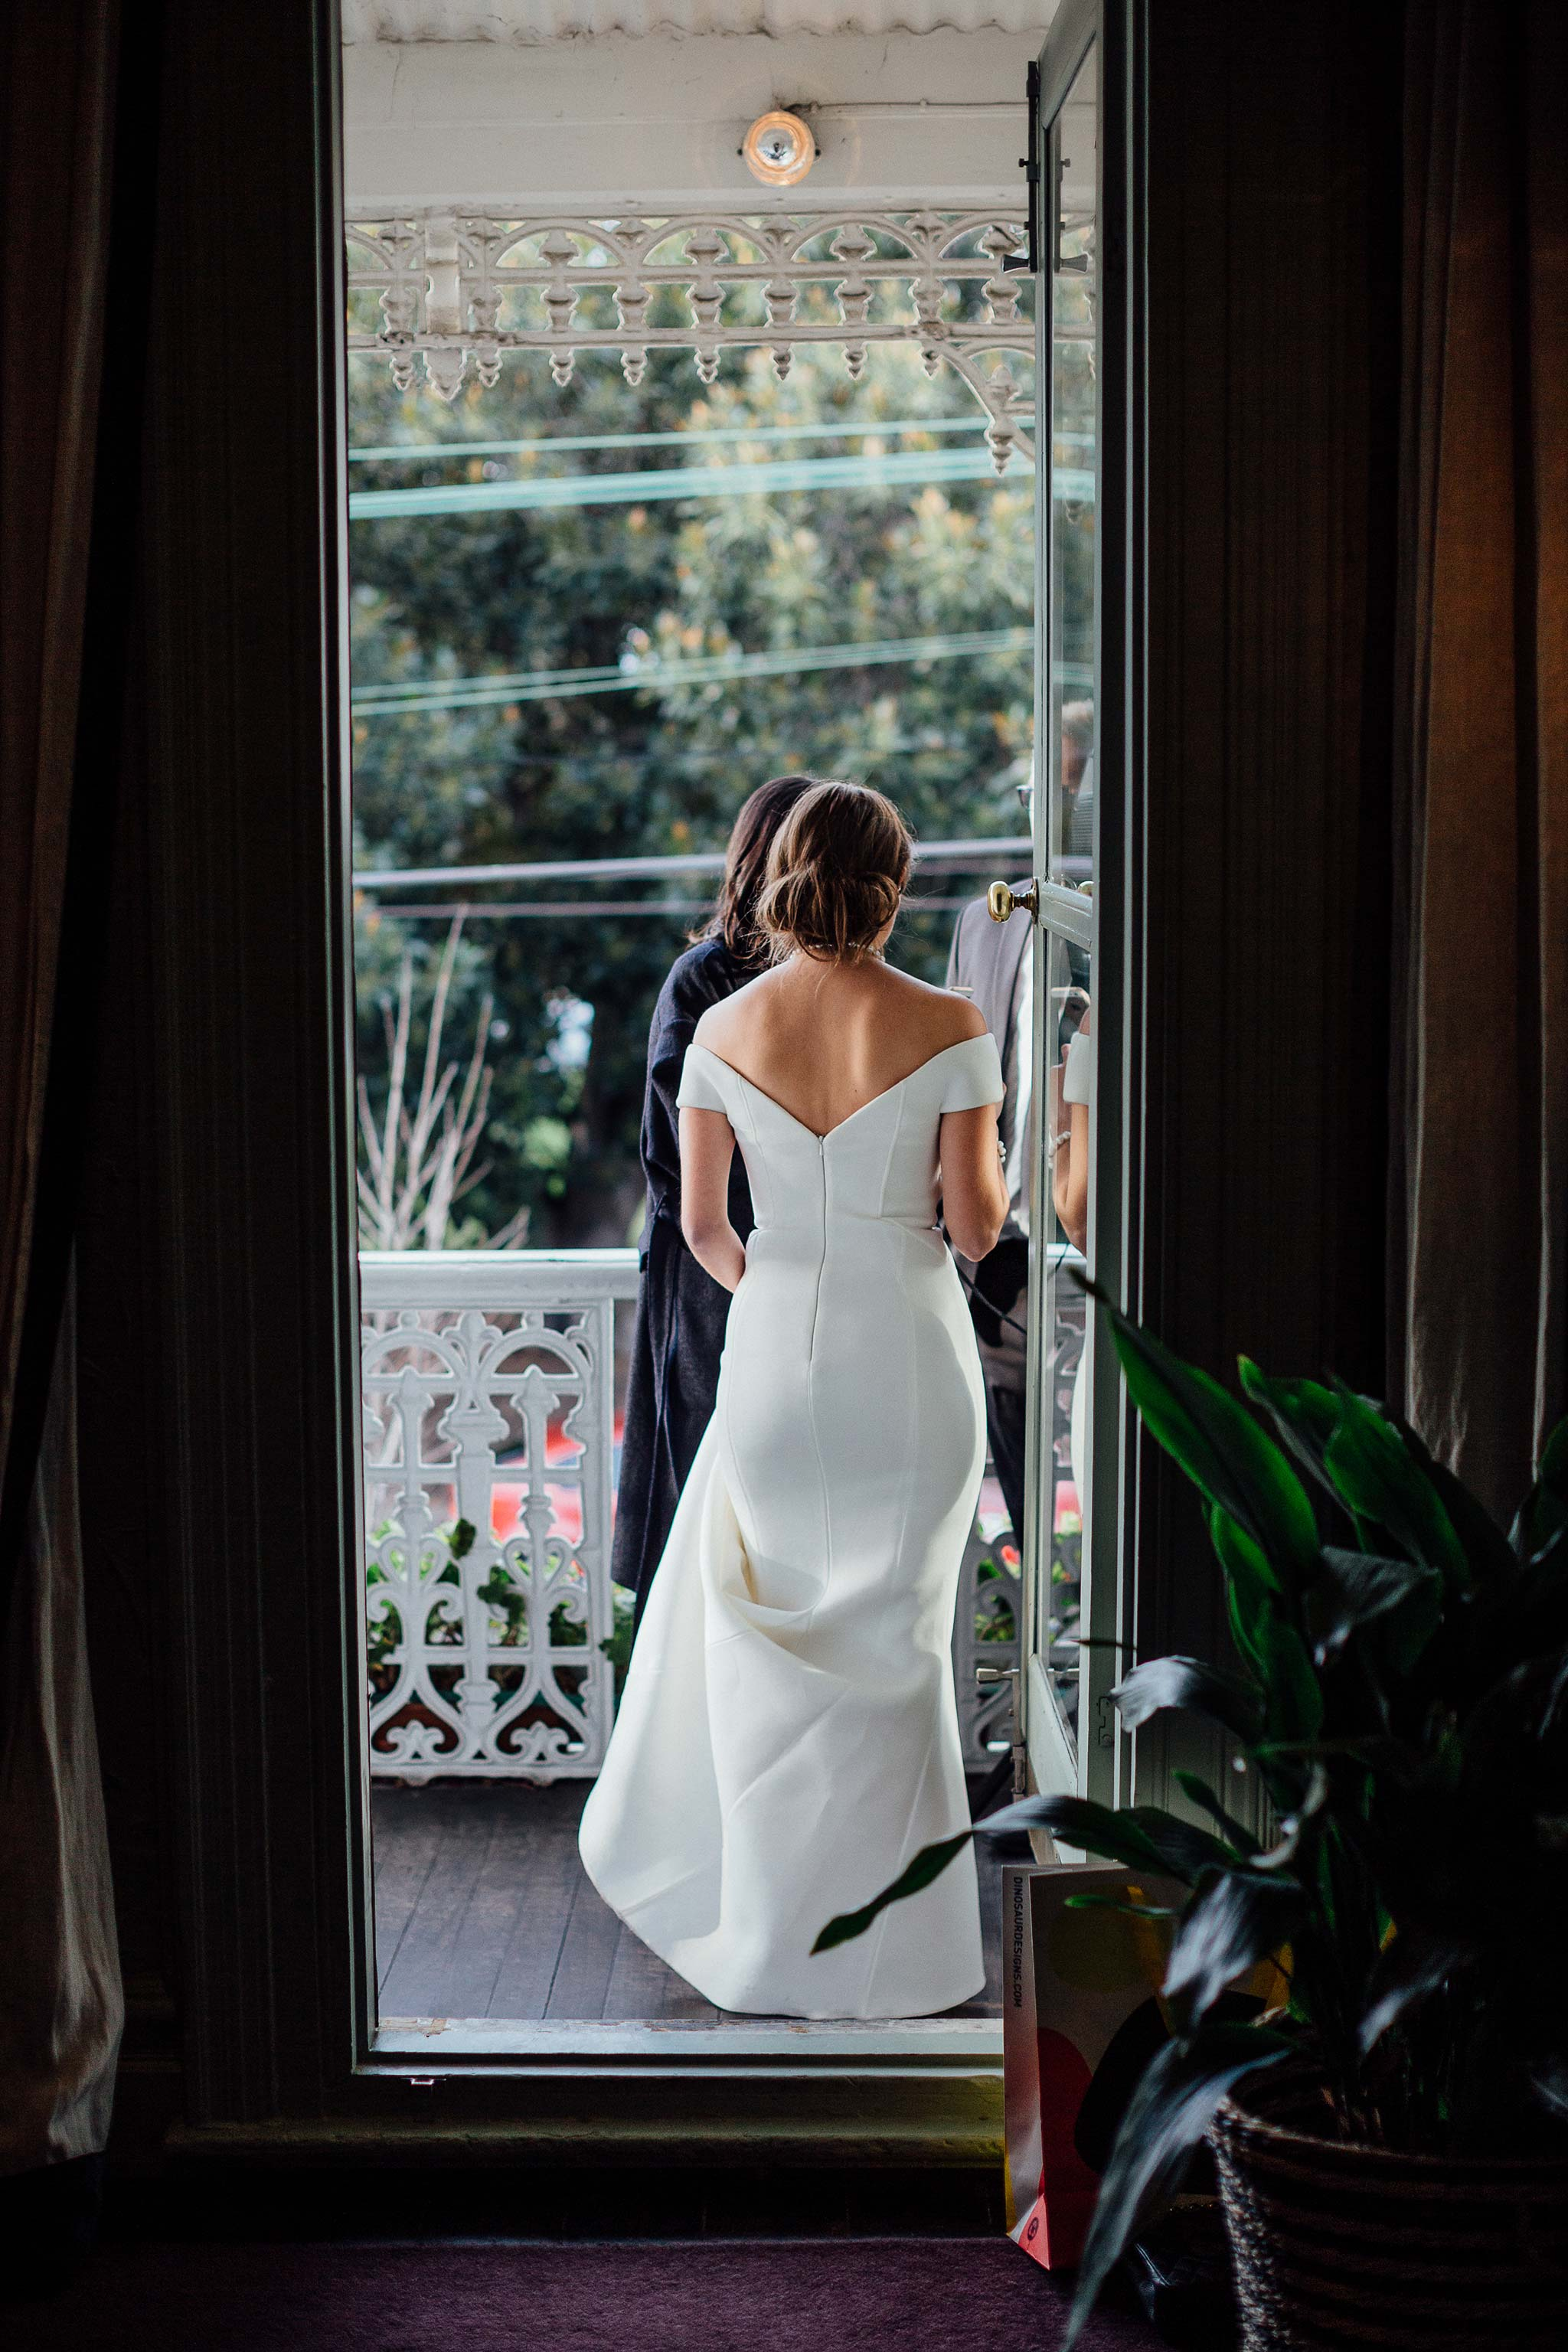 melbourne-entrecote-wedding-ceremony-arrival-bride